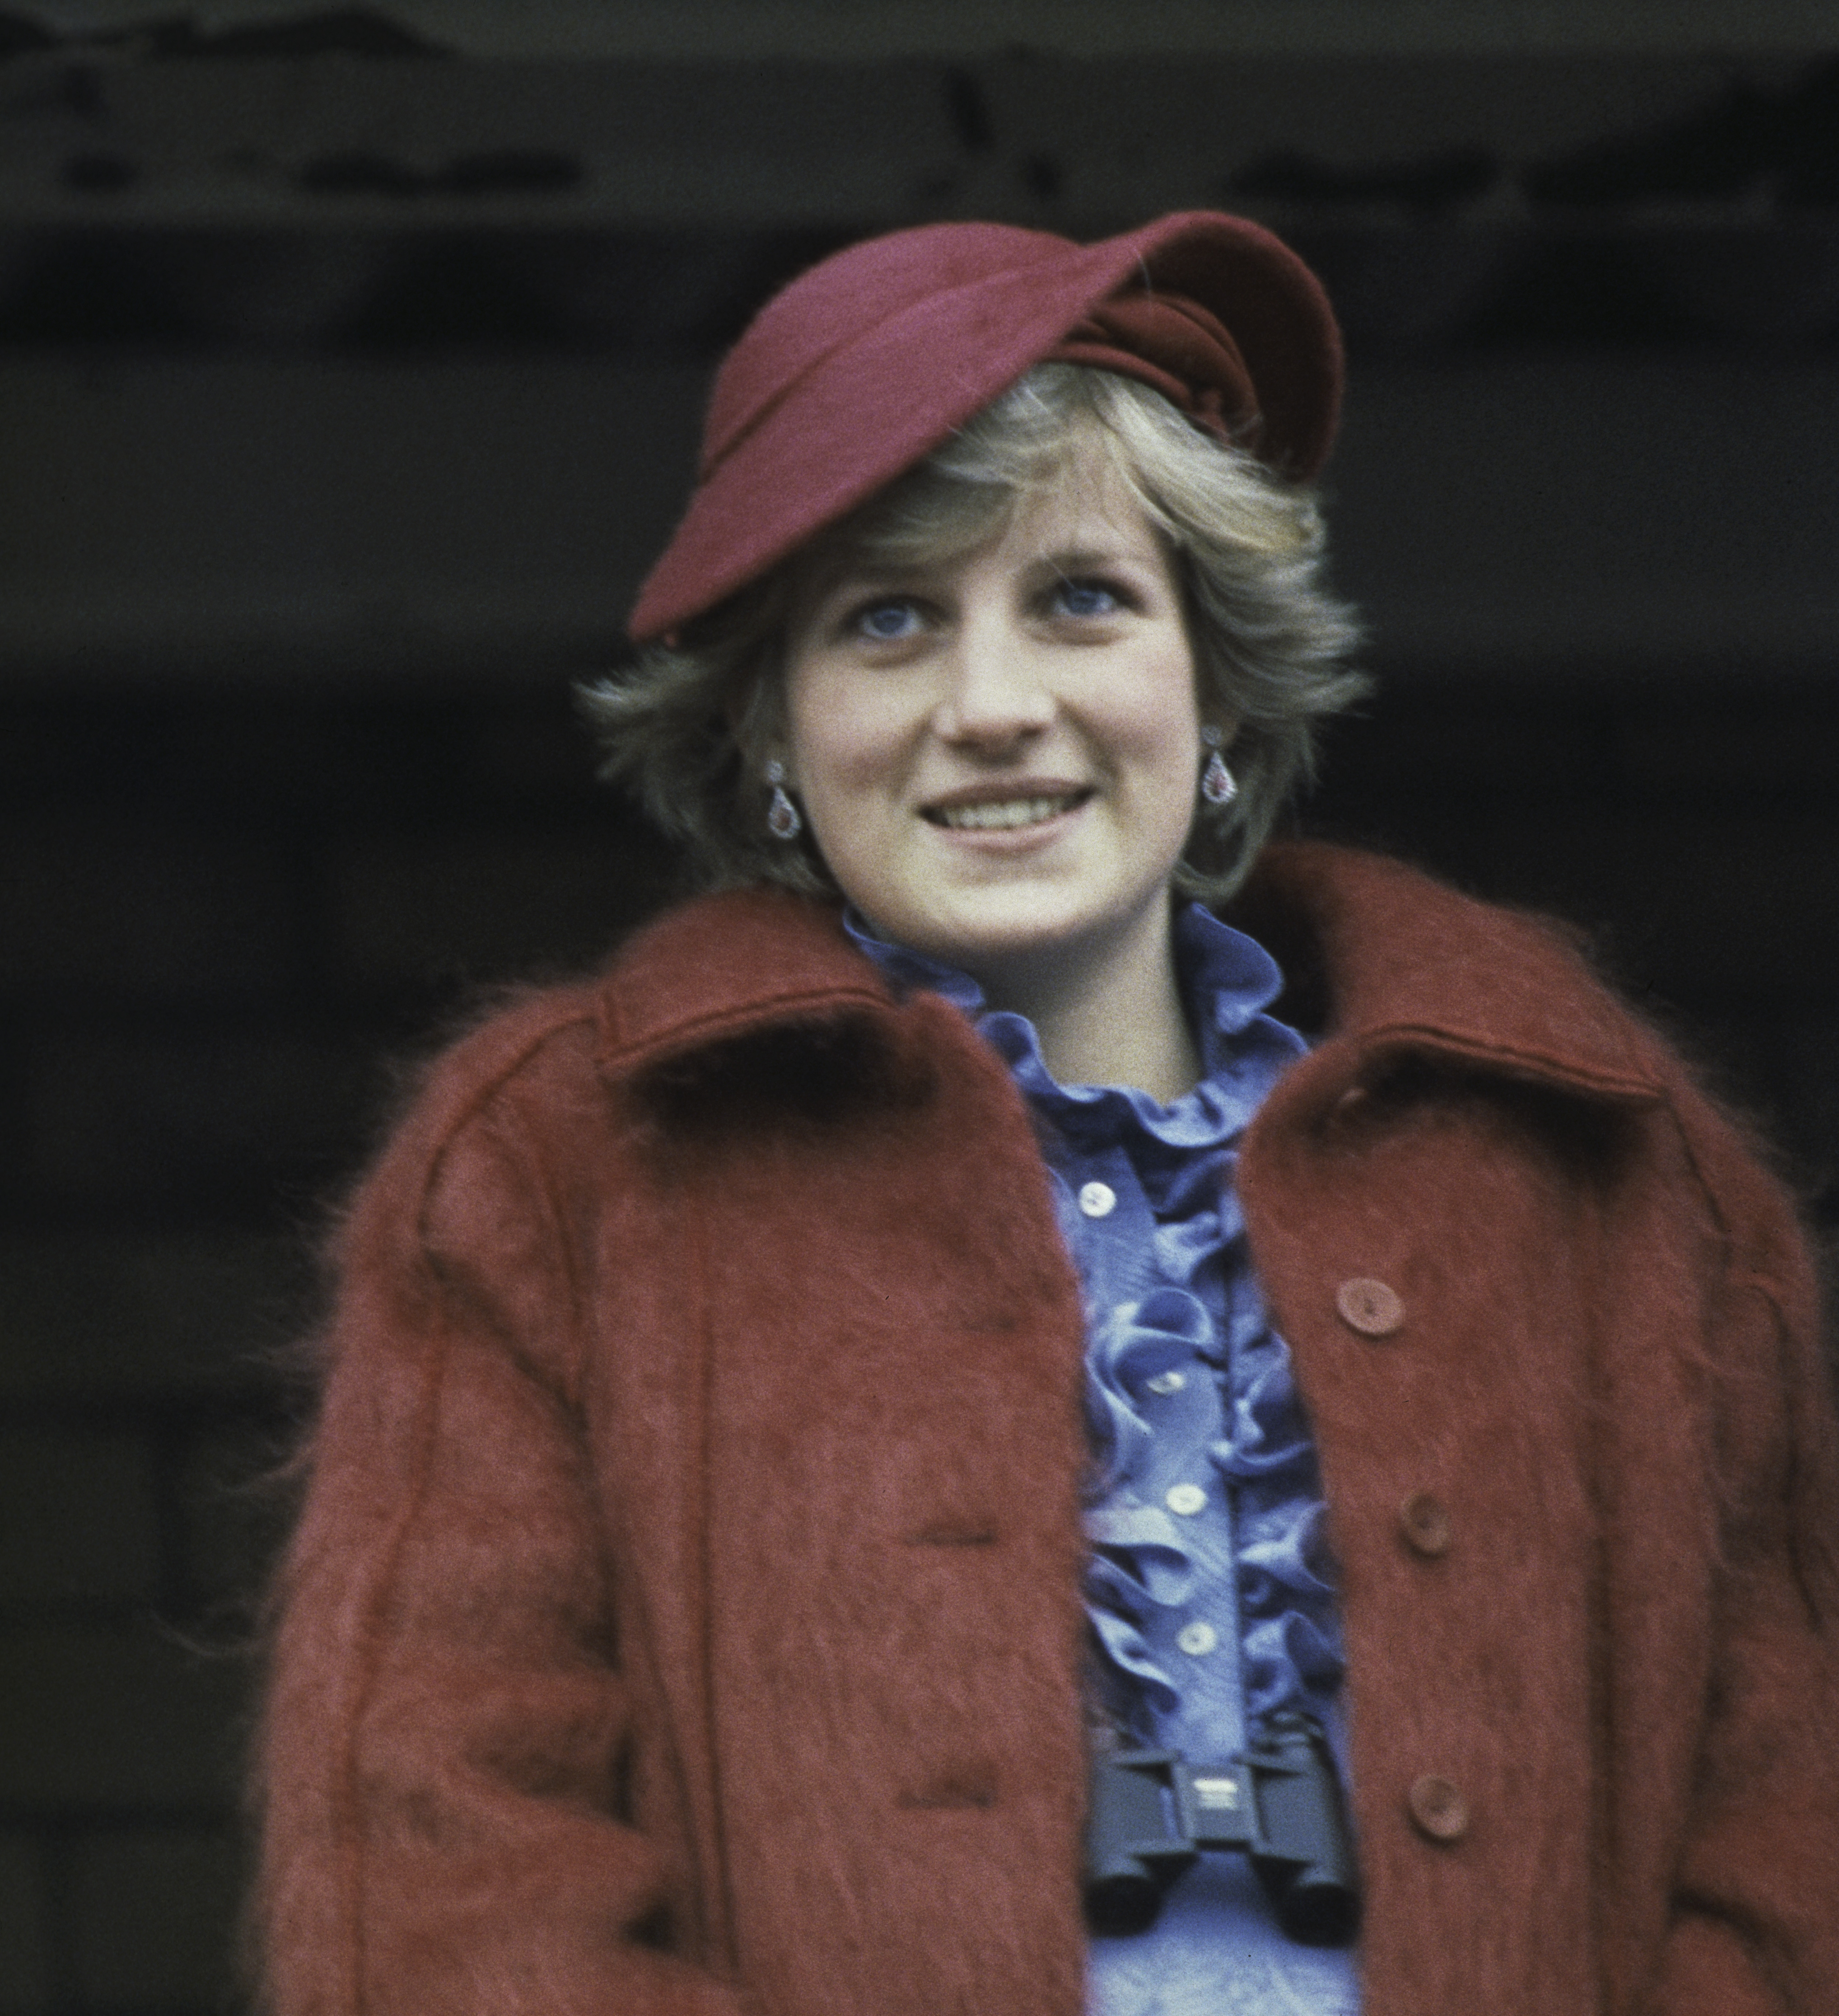 Princess Diana found it hard to follow this rule (Photo by Hulton Archive/Getty Images)